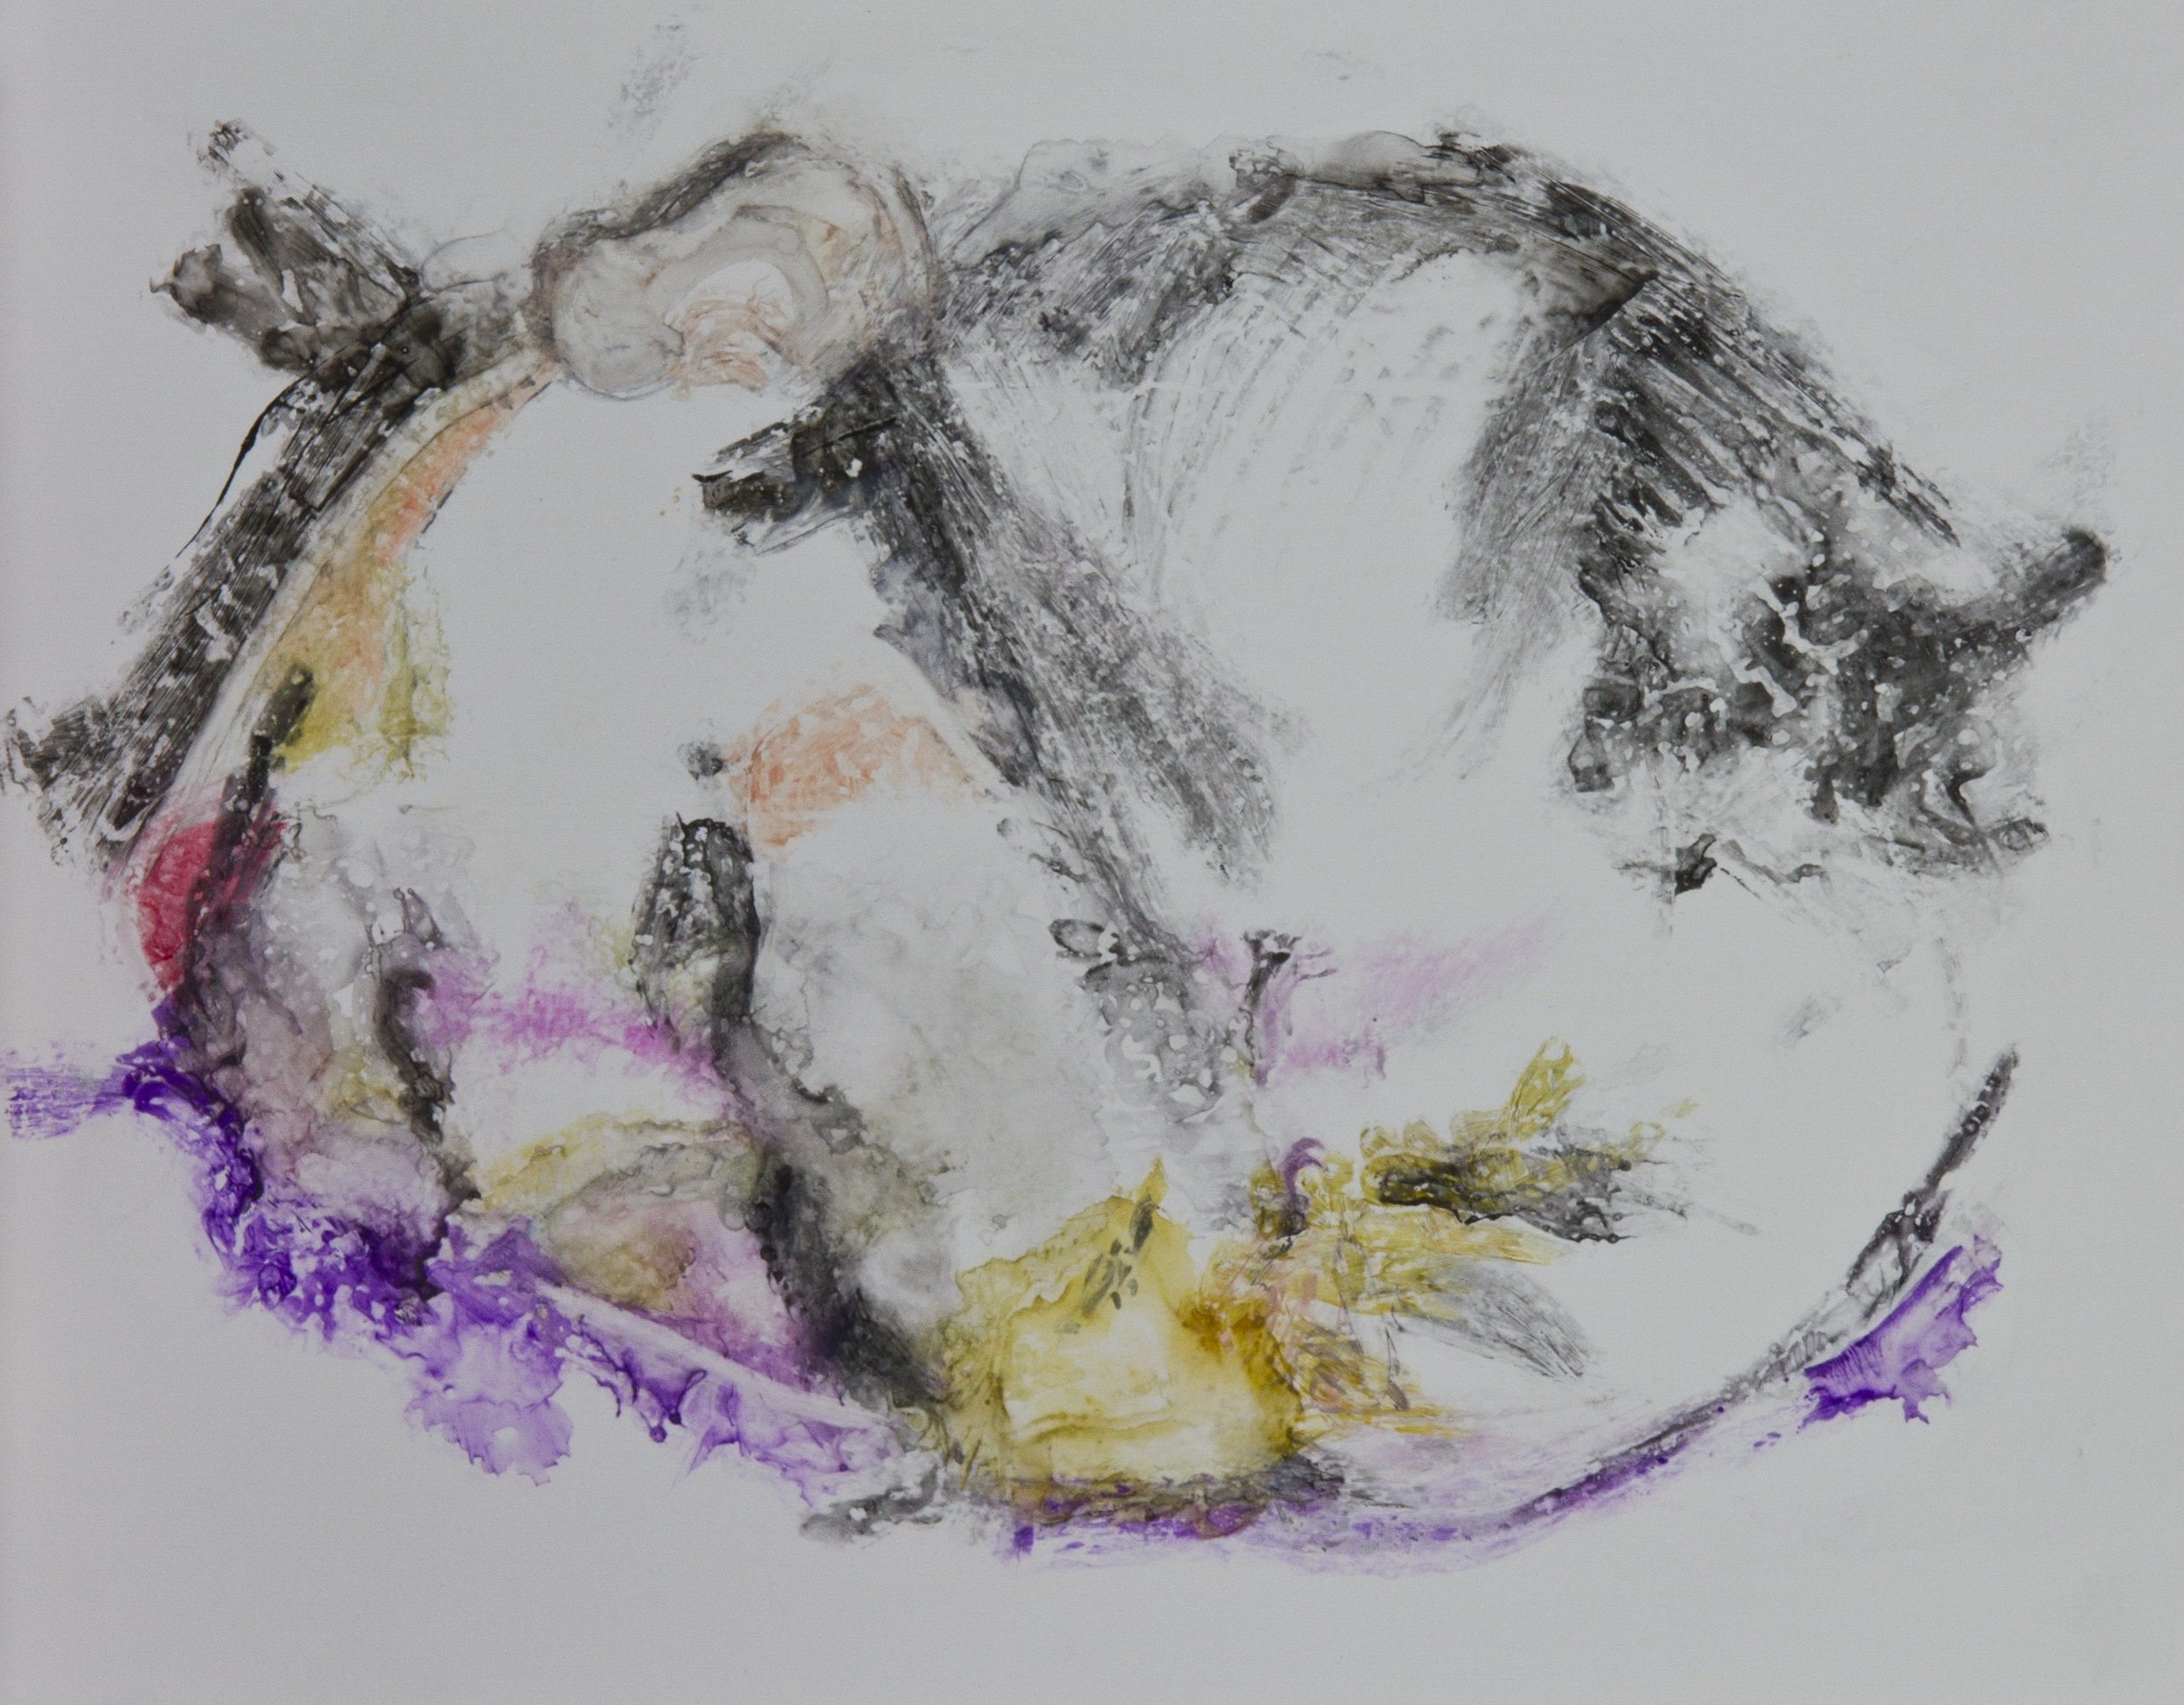 Acts 25, 2010, watercolor monotype on polypropylene, 11x14 inches